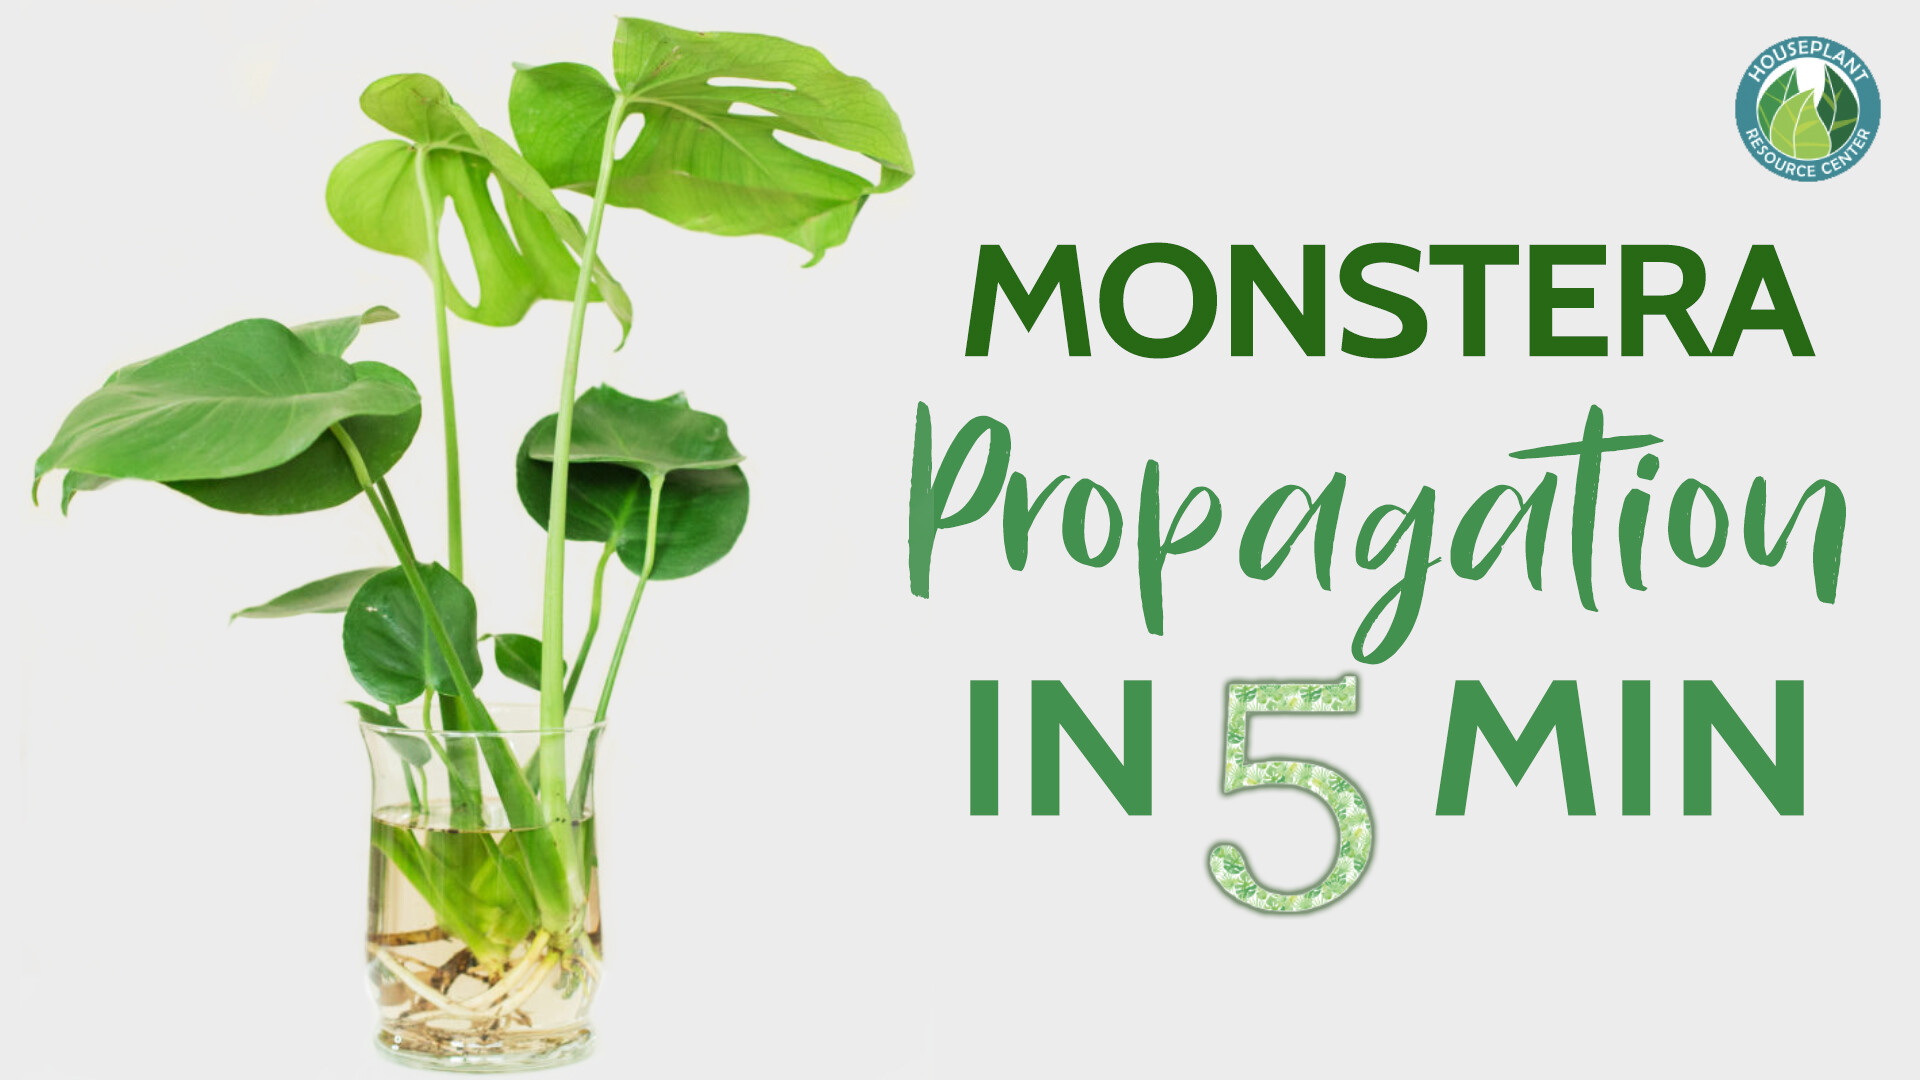 Monstera propagation in 5 minutes. Learn how to quickly propagate a monstera plant.